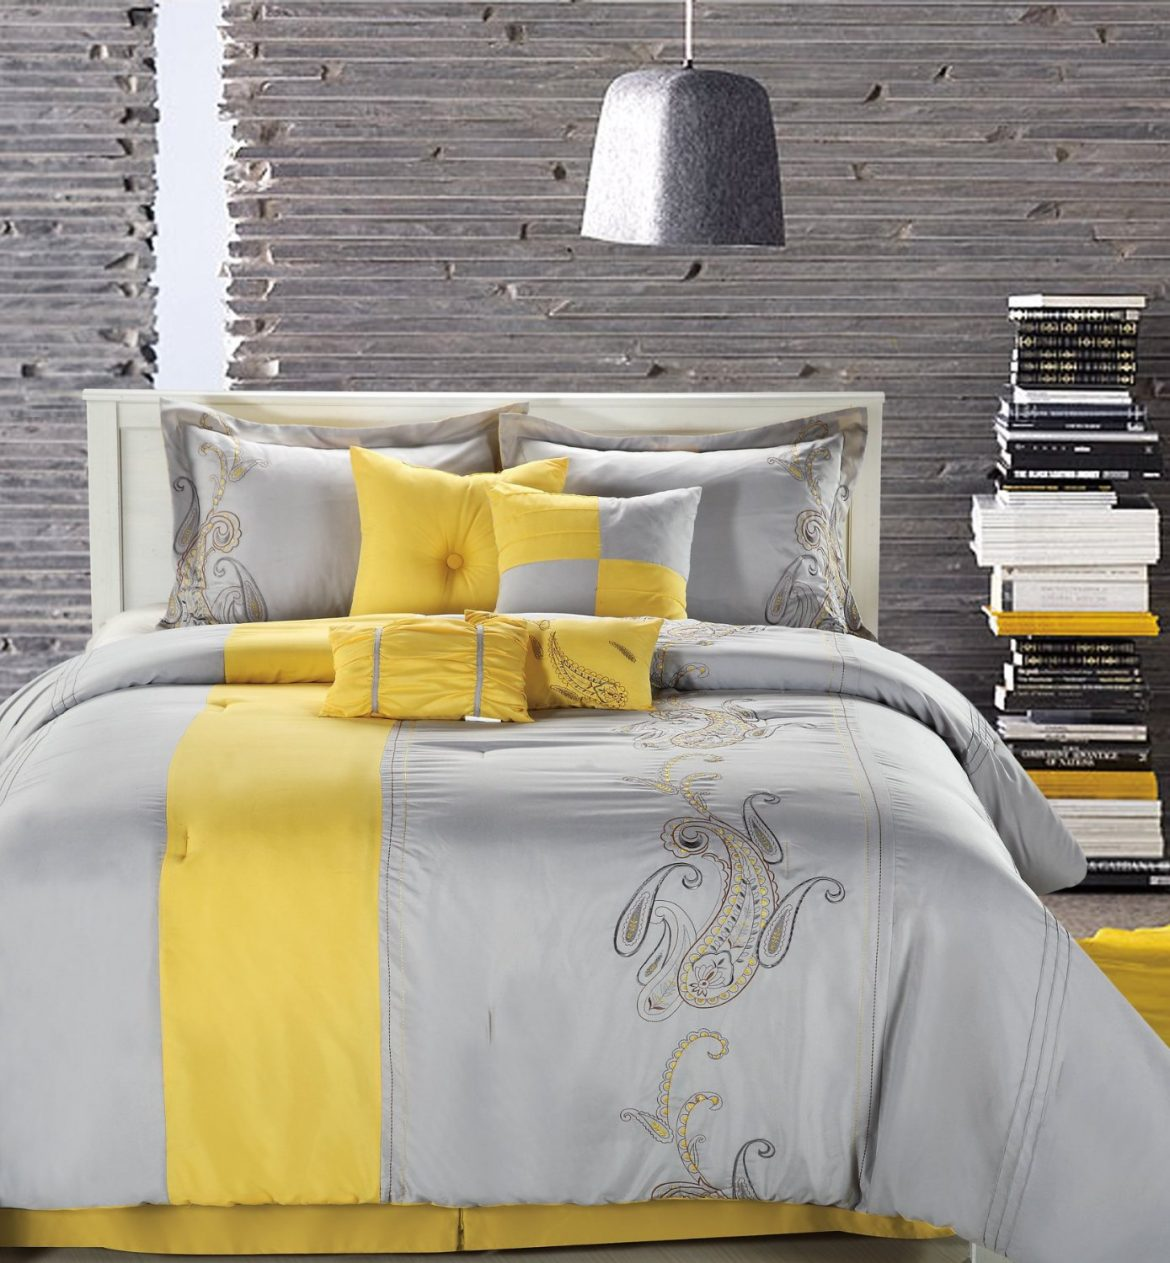 50 Shades of Grey Bedroom Decorating Ideas grey brown and yellow bedroom fhpt6cs7